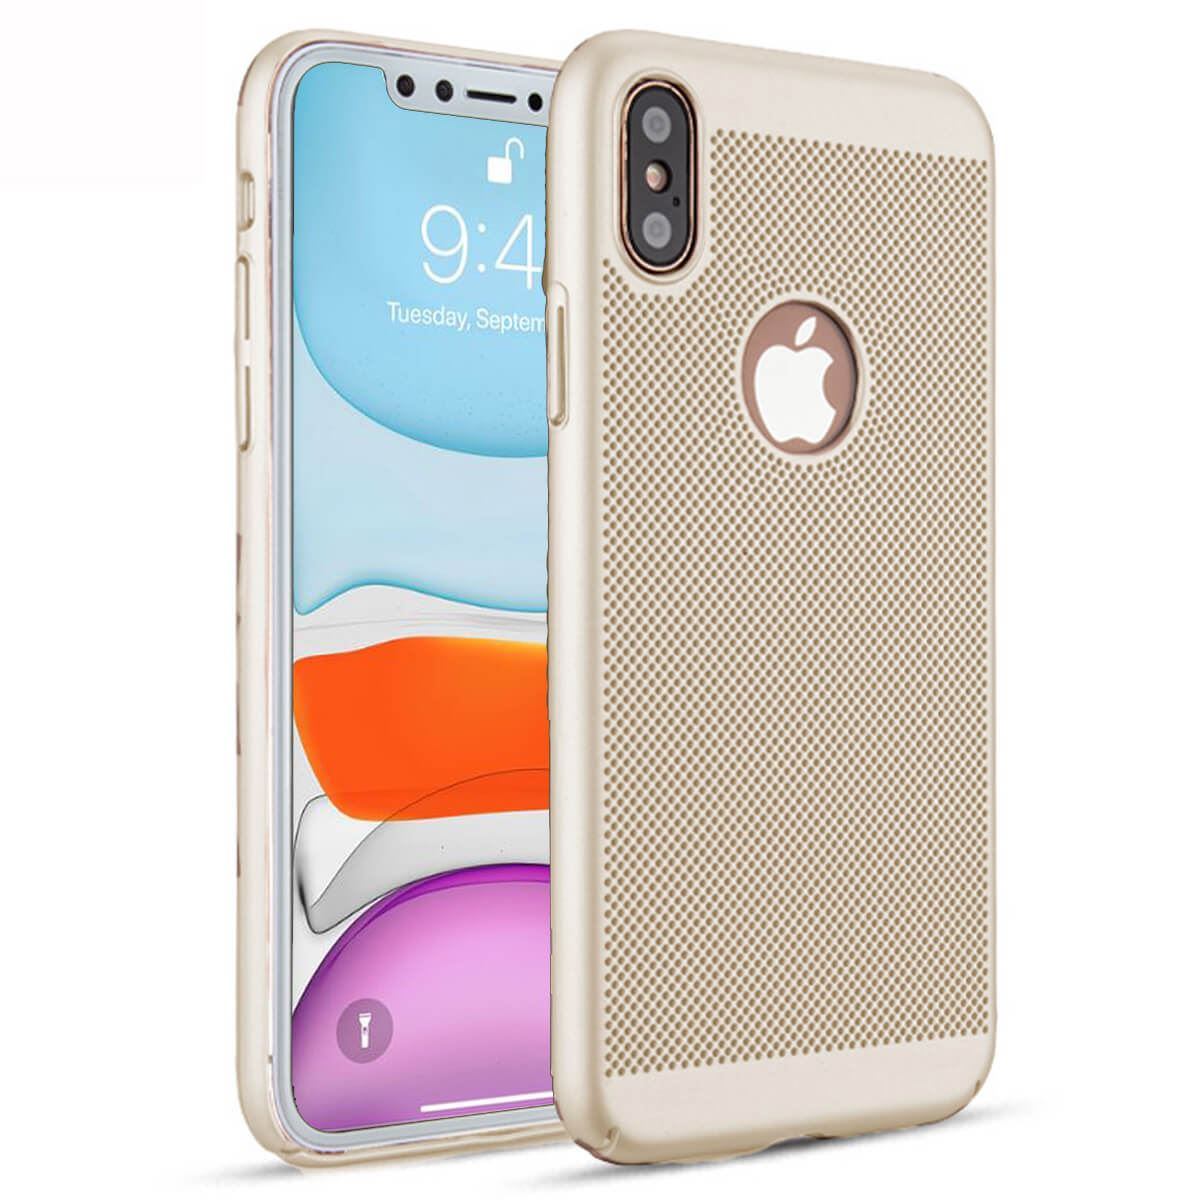 Ultra-Thin-Case-Apple-iPhone-10-X-8-7-6s-5s-Luxury-Slim-PC-Mesh-Hard-Back-Cover thumbnail 9